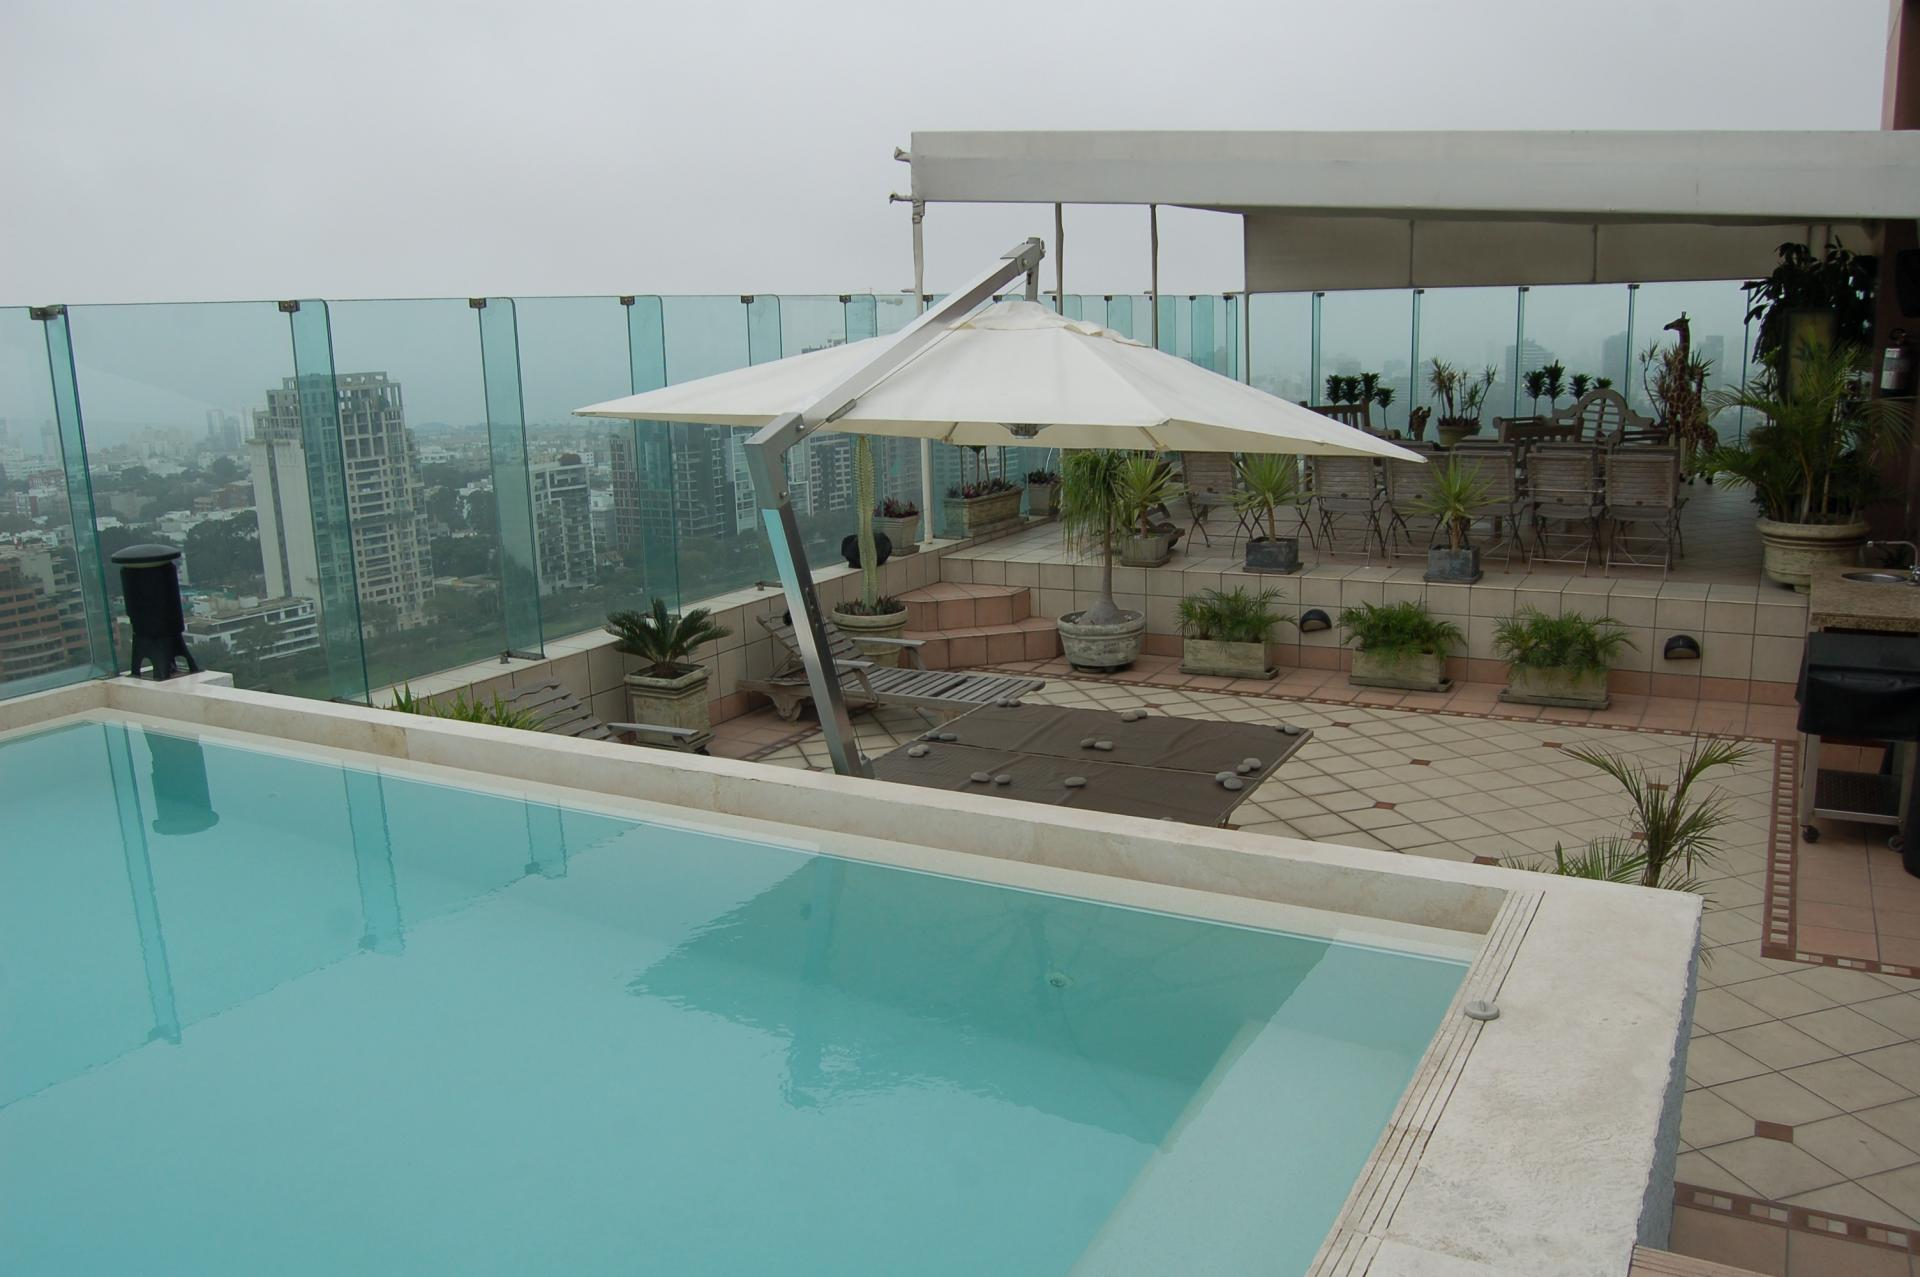 LIMA, SAN ISIDRO, 4 BEDROOM PENTHOUSE WITH POOL, VIEWS OF LIMA GOLF, FOR RENT